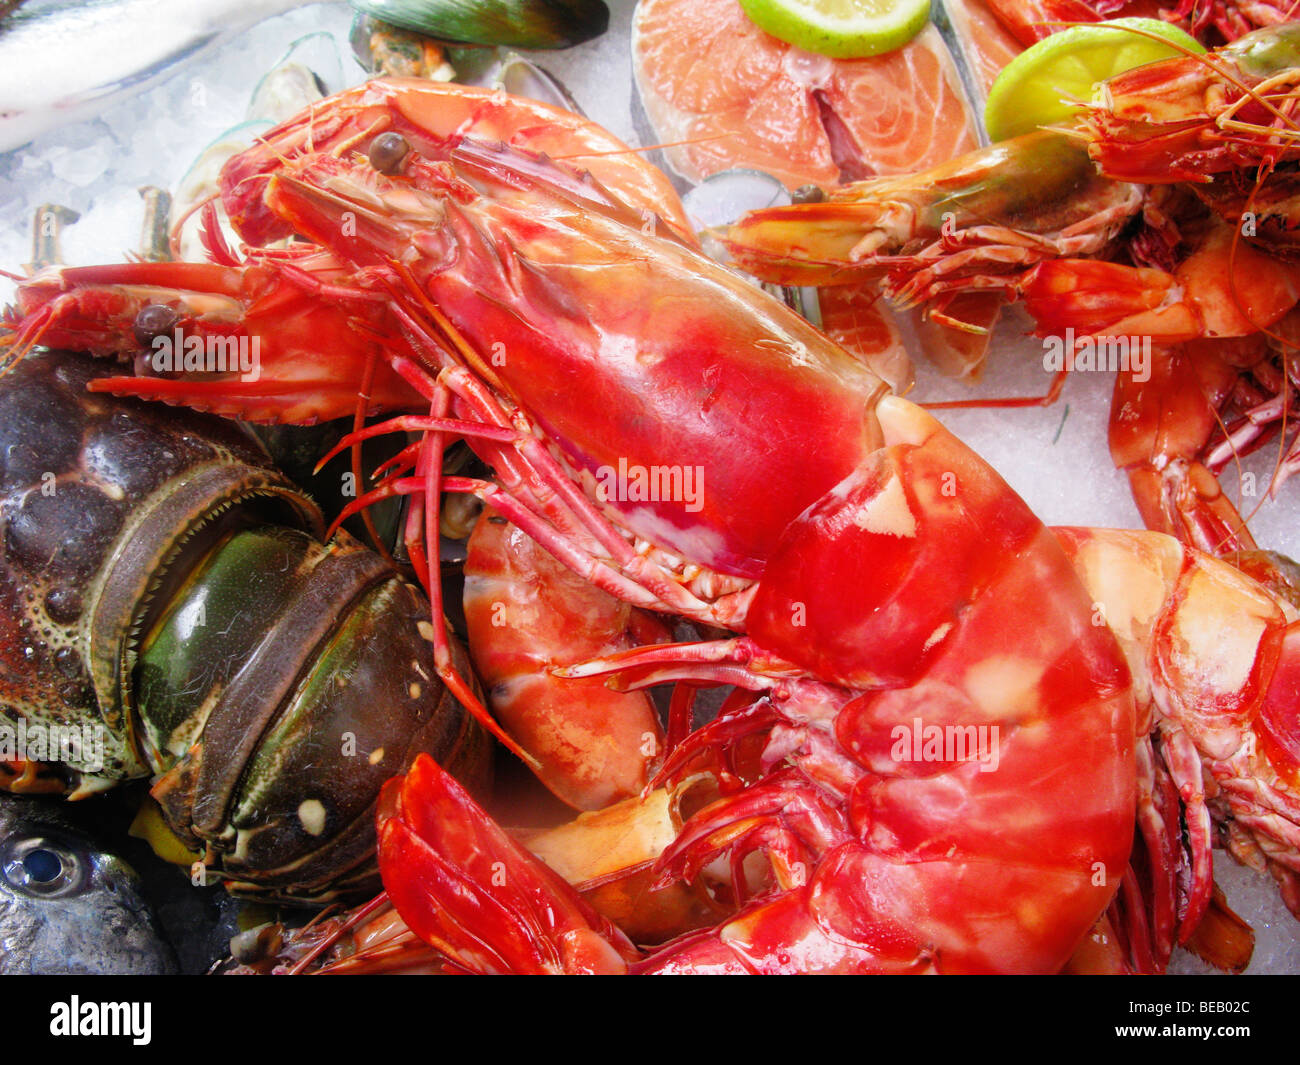 Display of Fresh Prawns and Lobster, Rethymnon Fish Restaurant , Crete, Greece - Stock Image